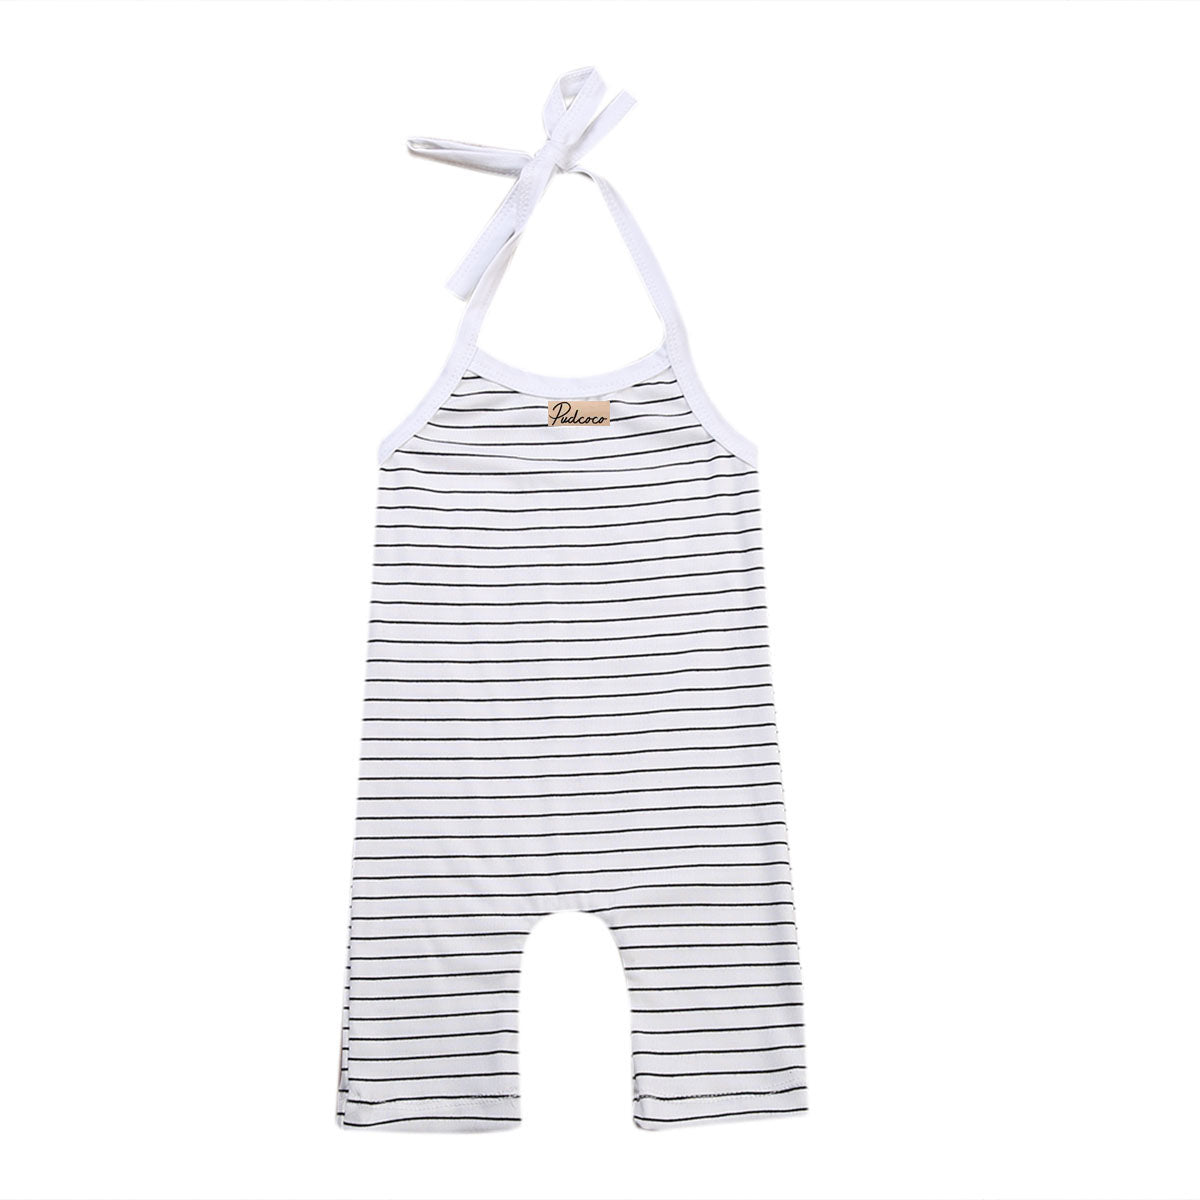 Newborn Baby Girls Boys Stripe Black and White O-Neck Cotton Sleeveless Romper Clothes Summer Outfits-eosegal